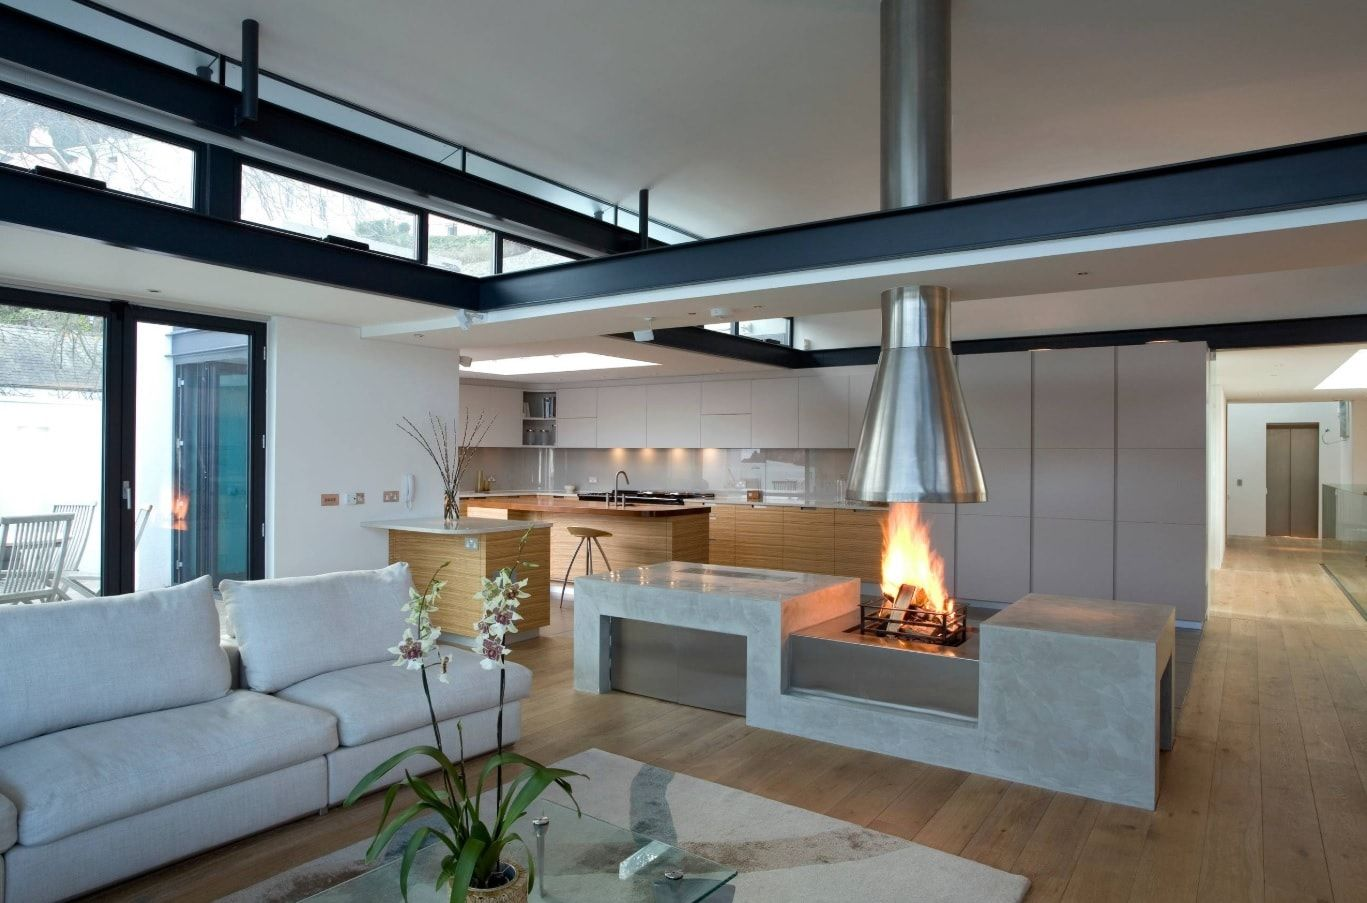 Futuristic House Interior In Details What Makes It So Special